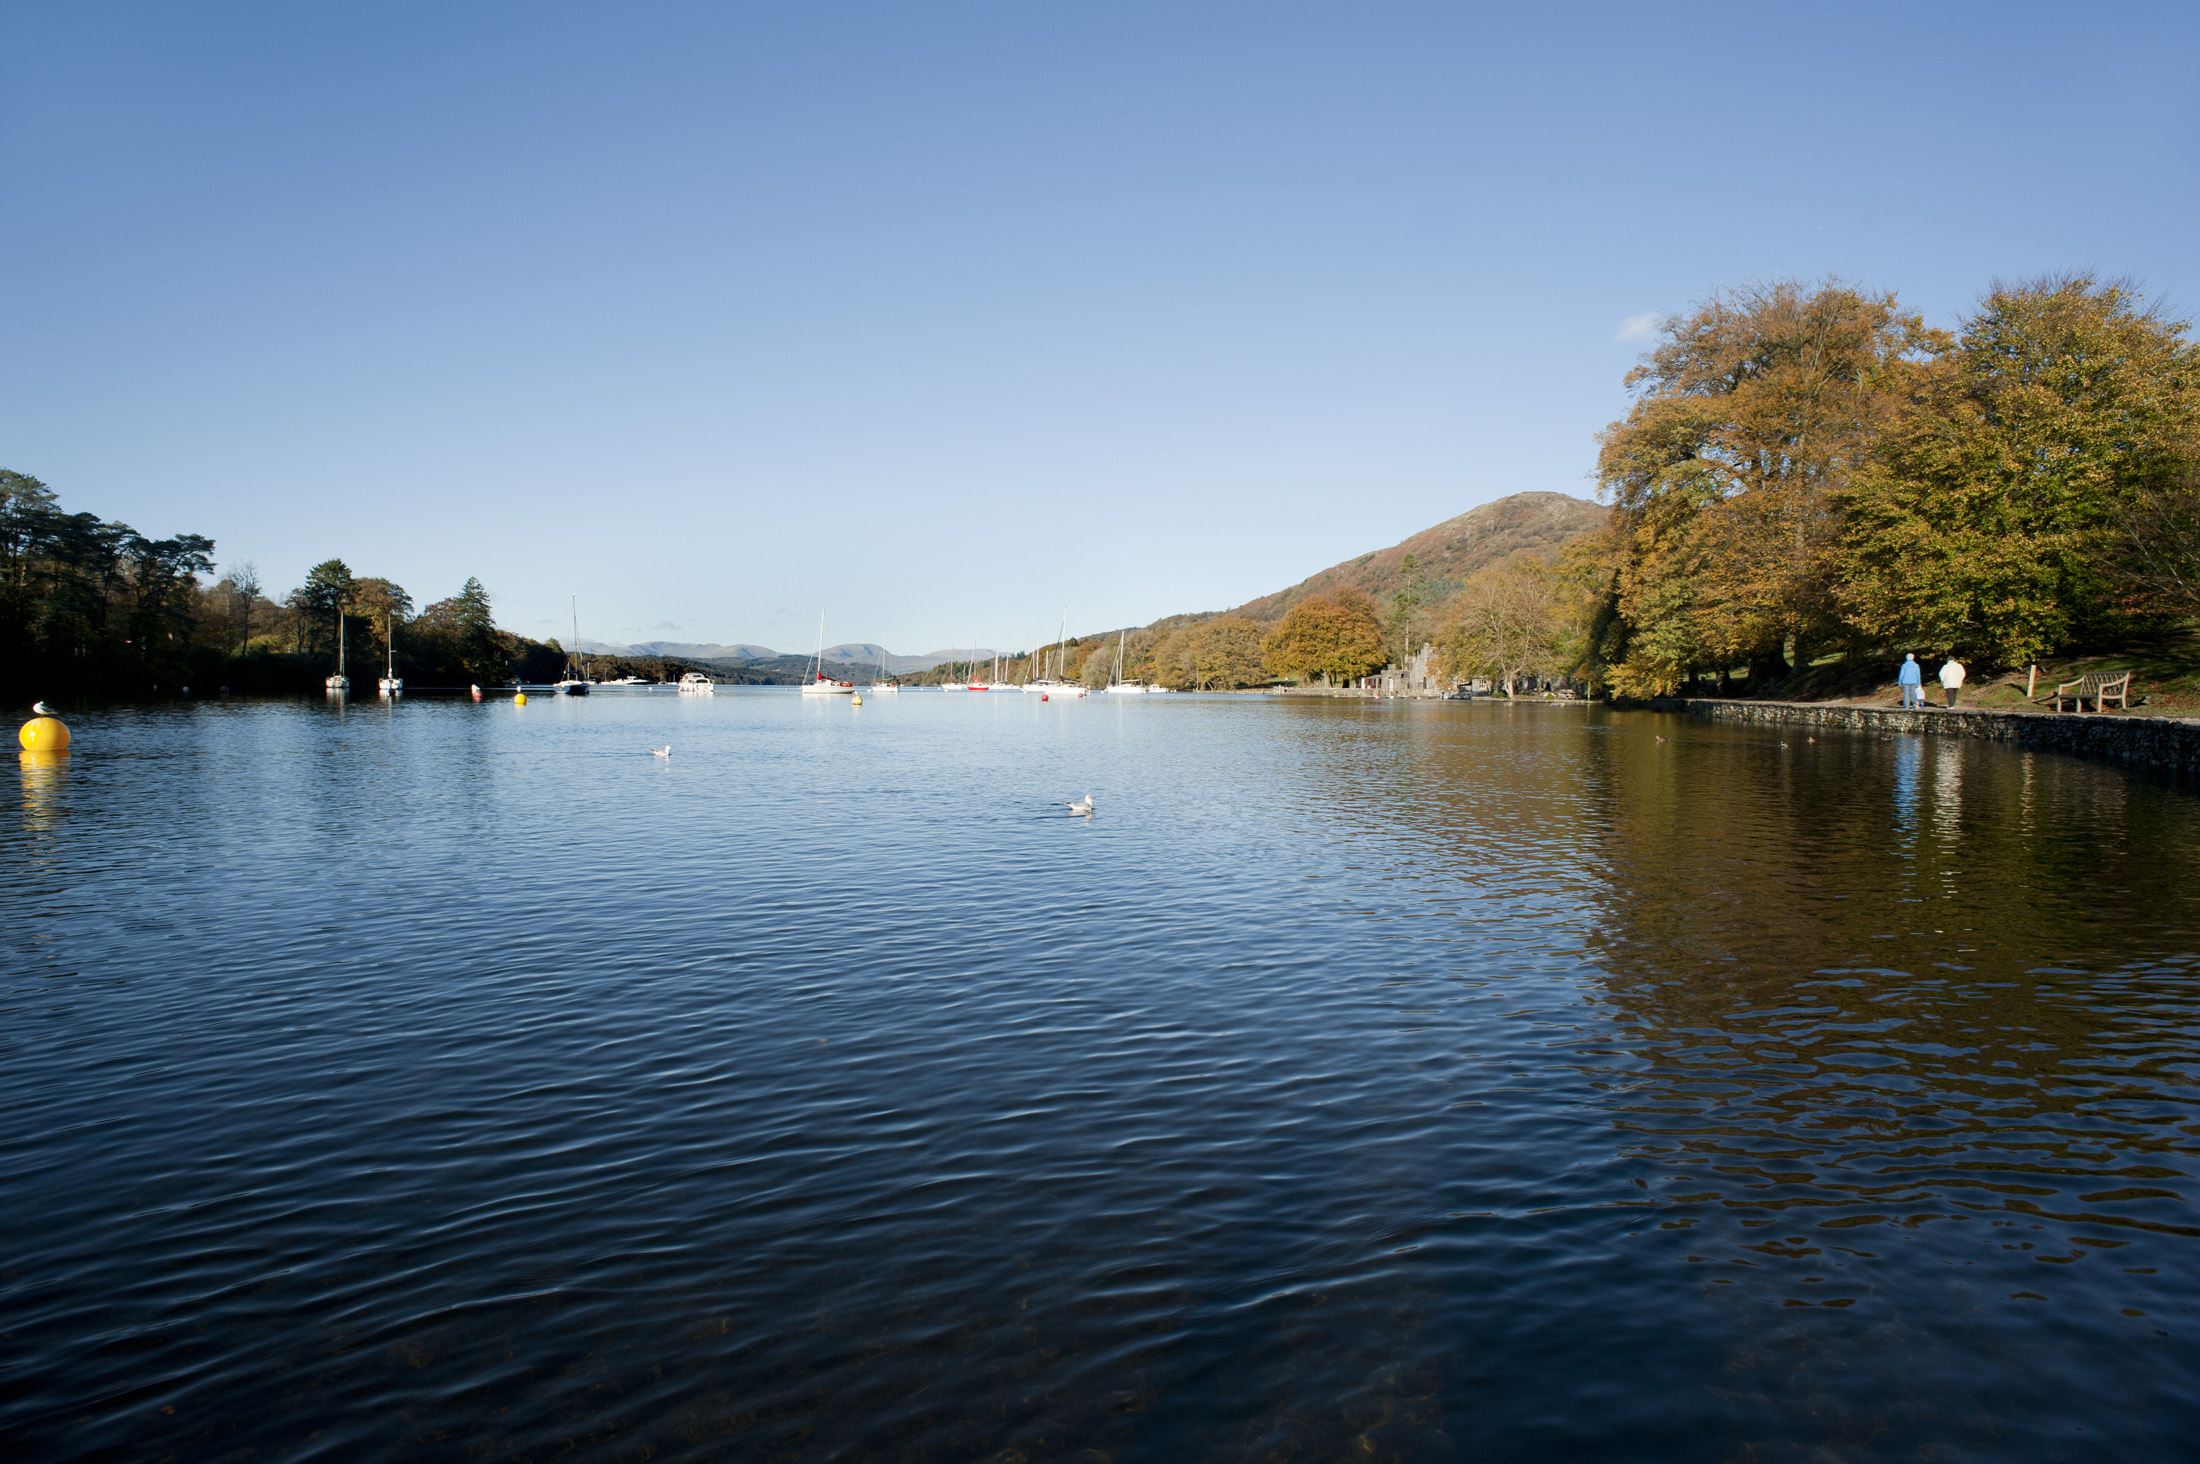 Beautiful calm tranquil waters of Lake Windermere in the English Lake District